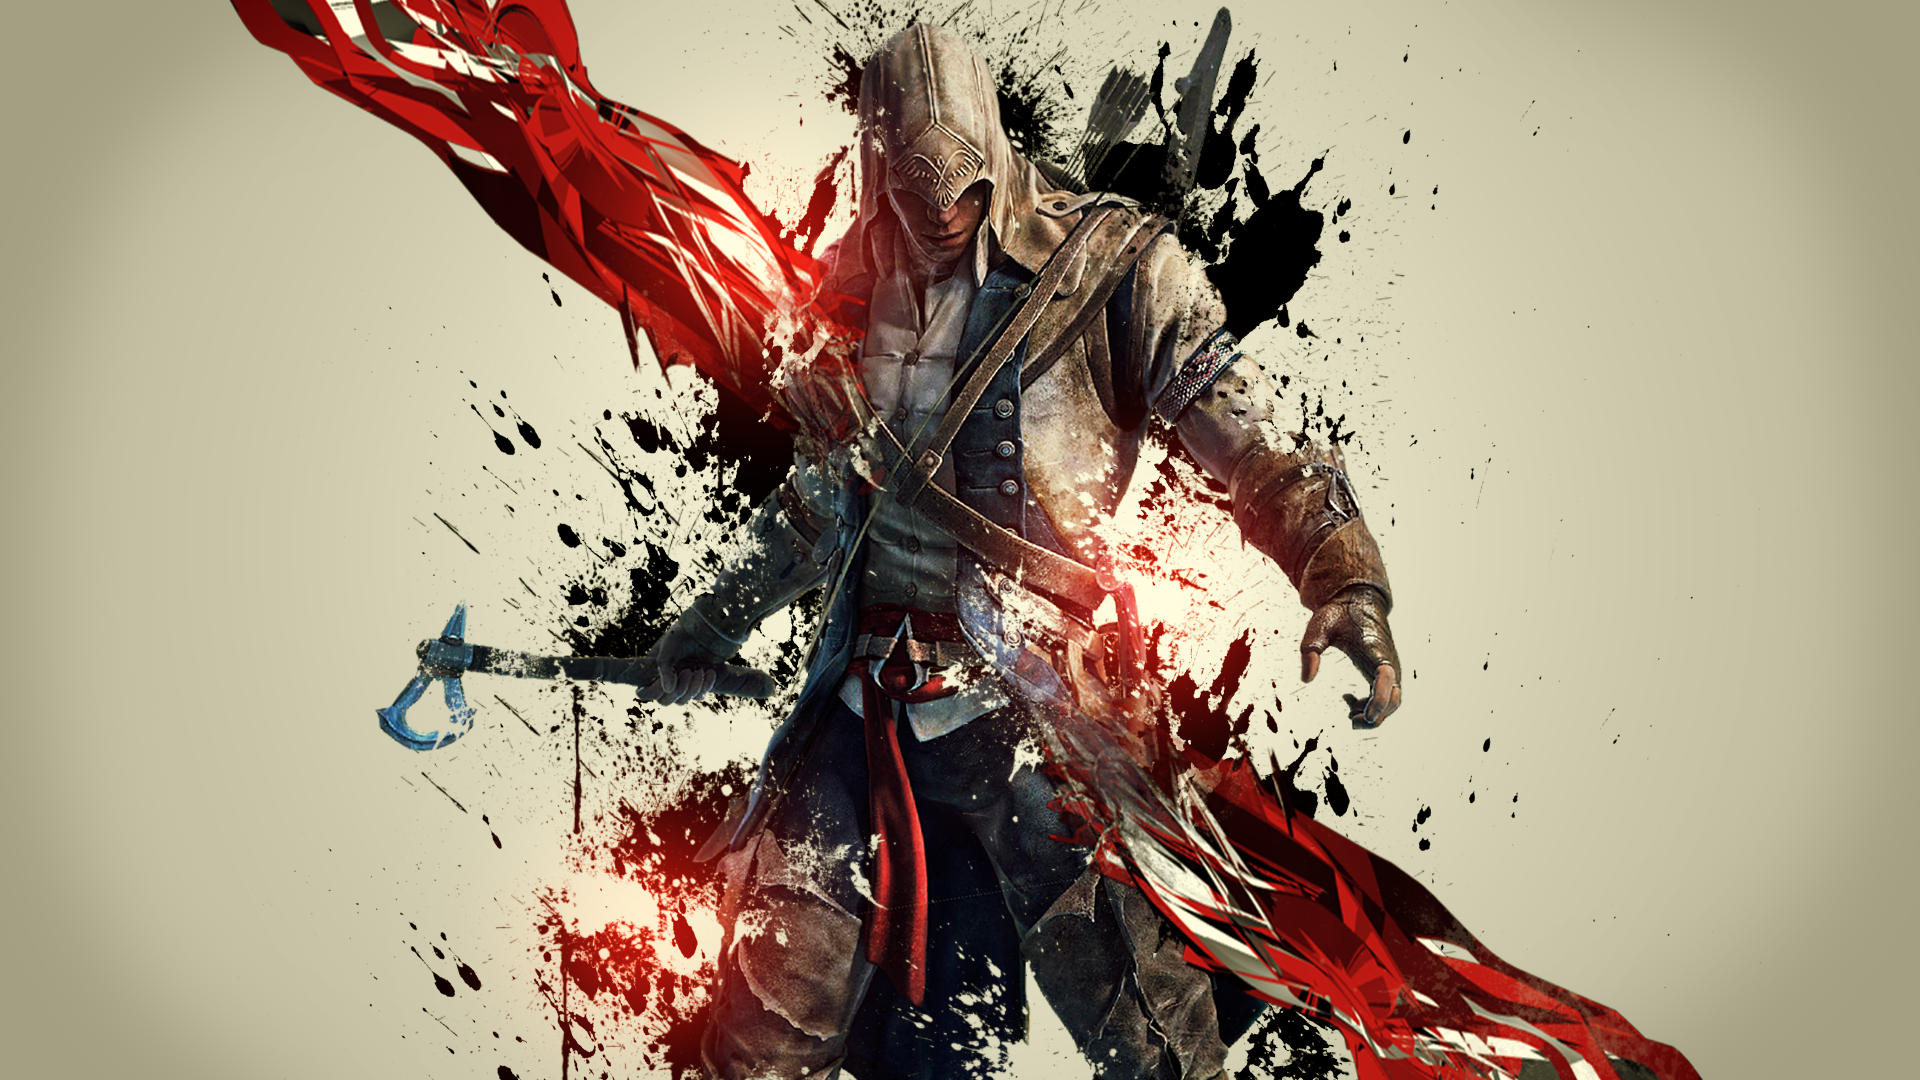 919 Assassins Creed HD Wallpapers Backgrounds 1920x1080